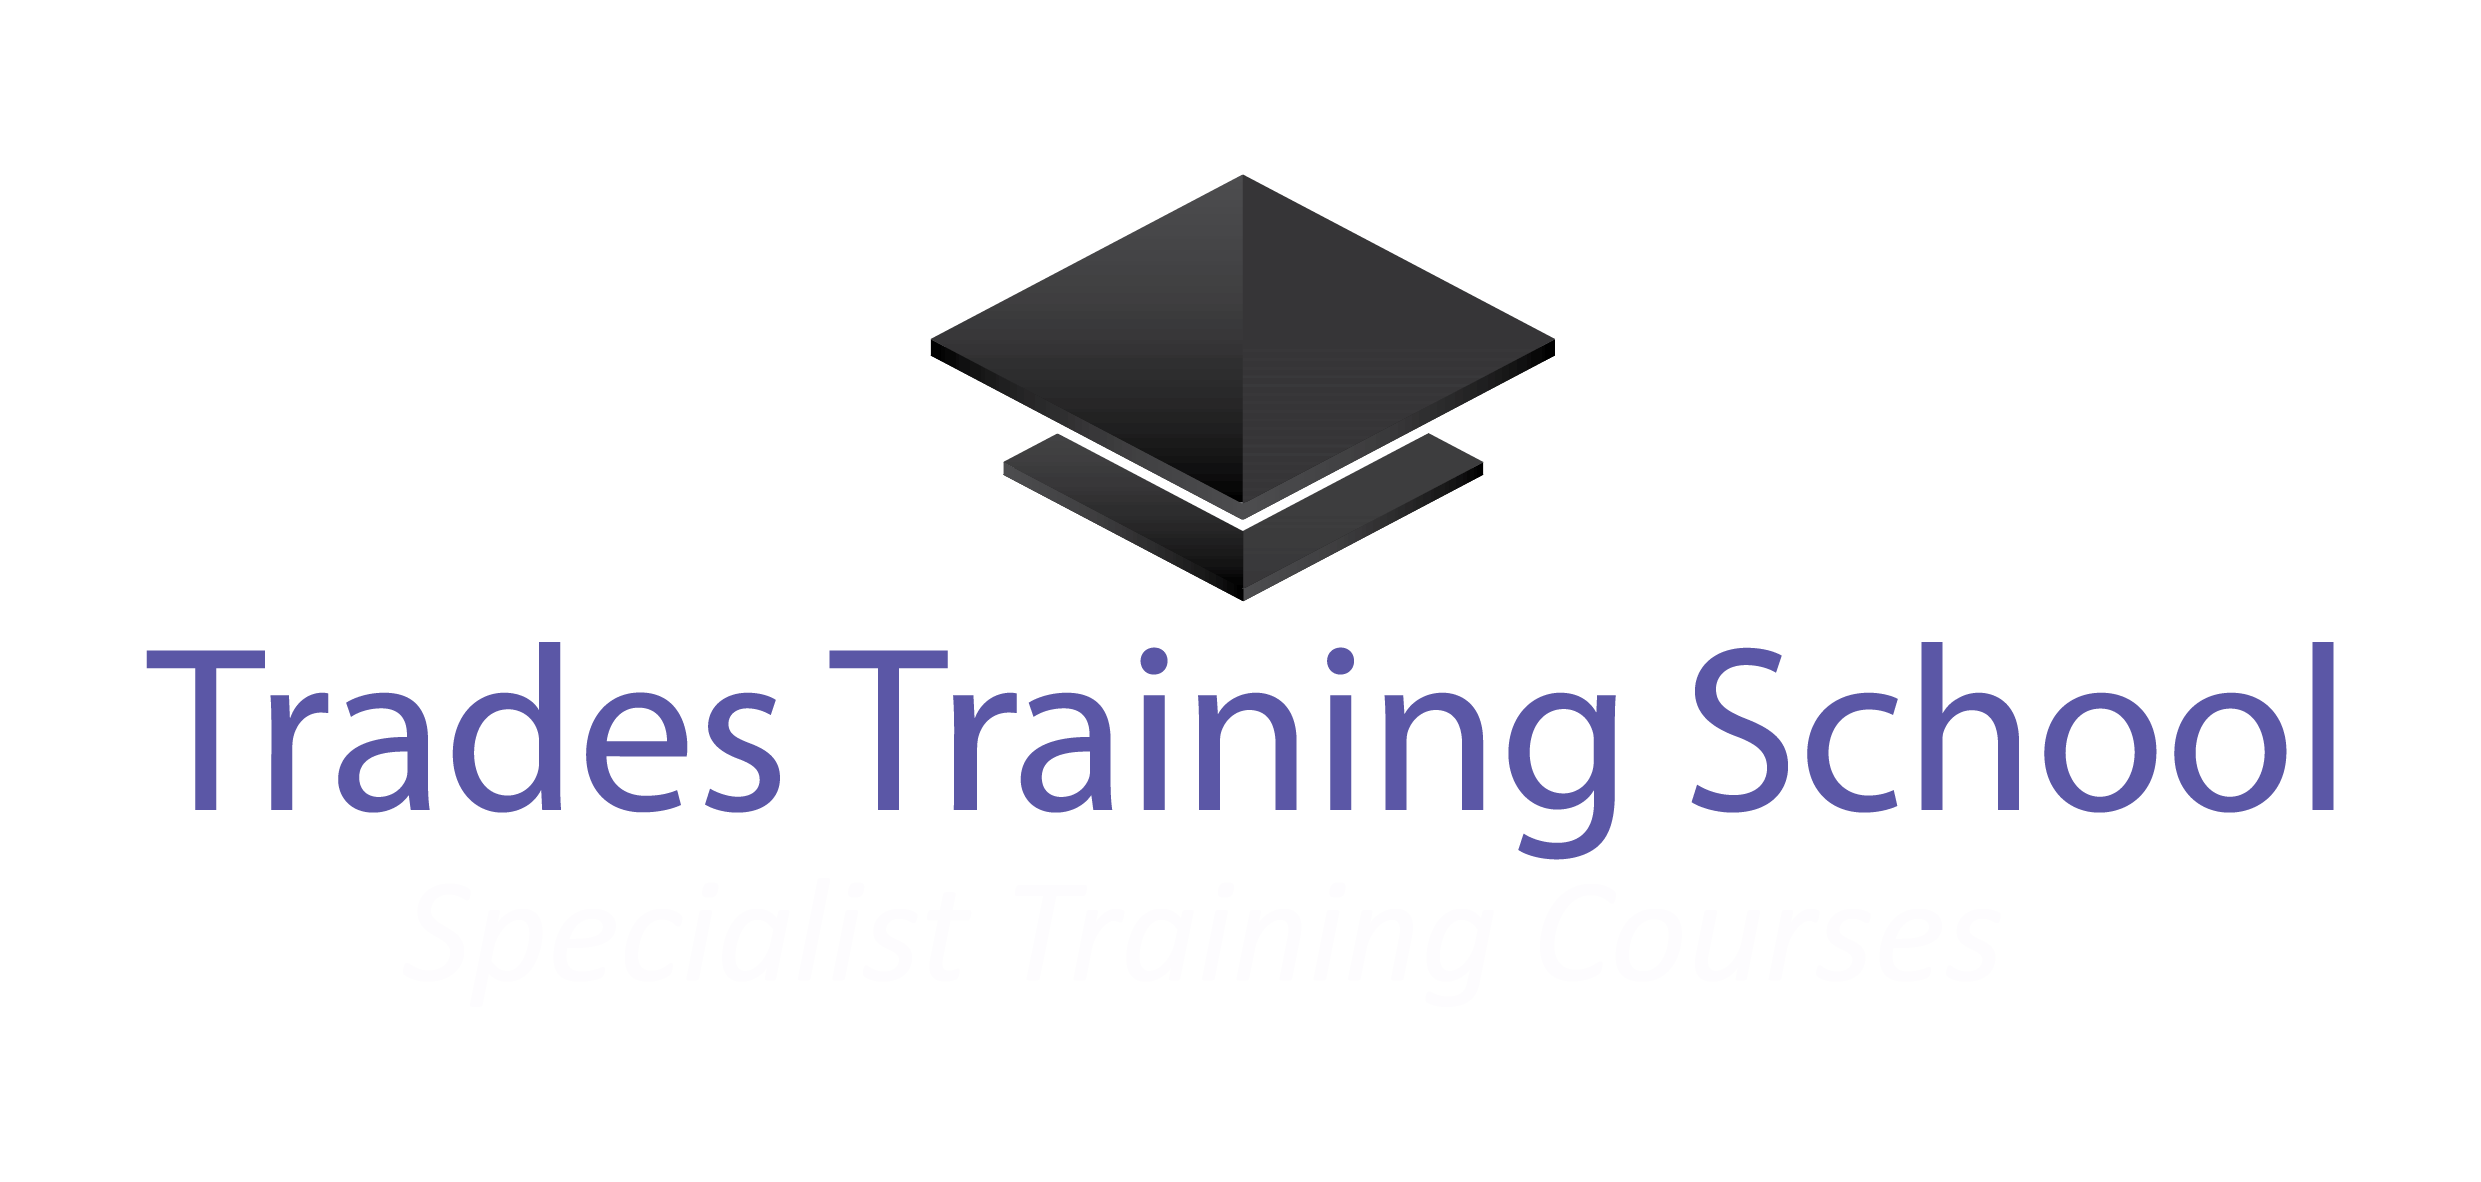 trades training school ltd trade courses learn a trade